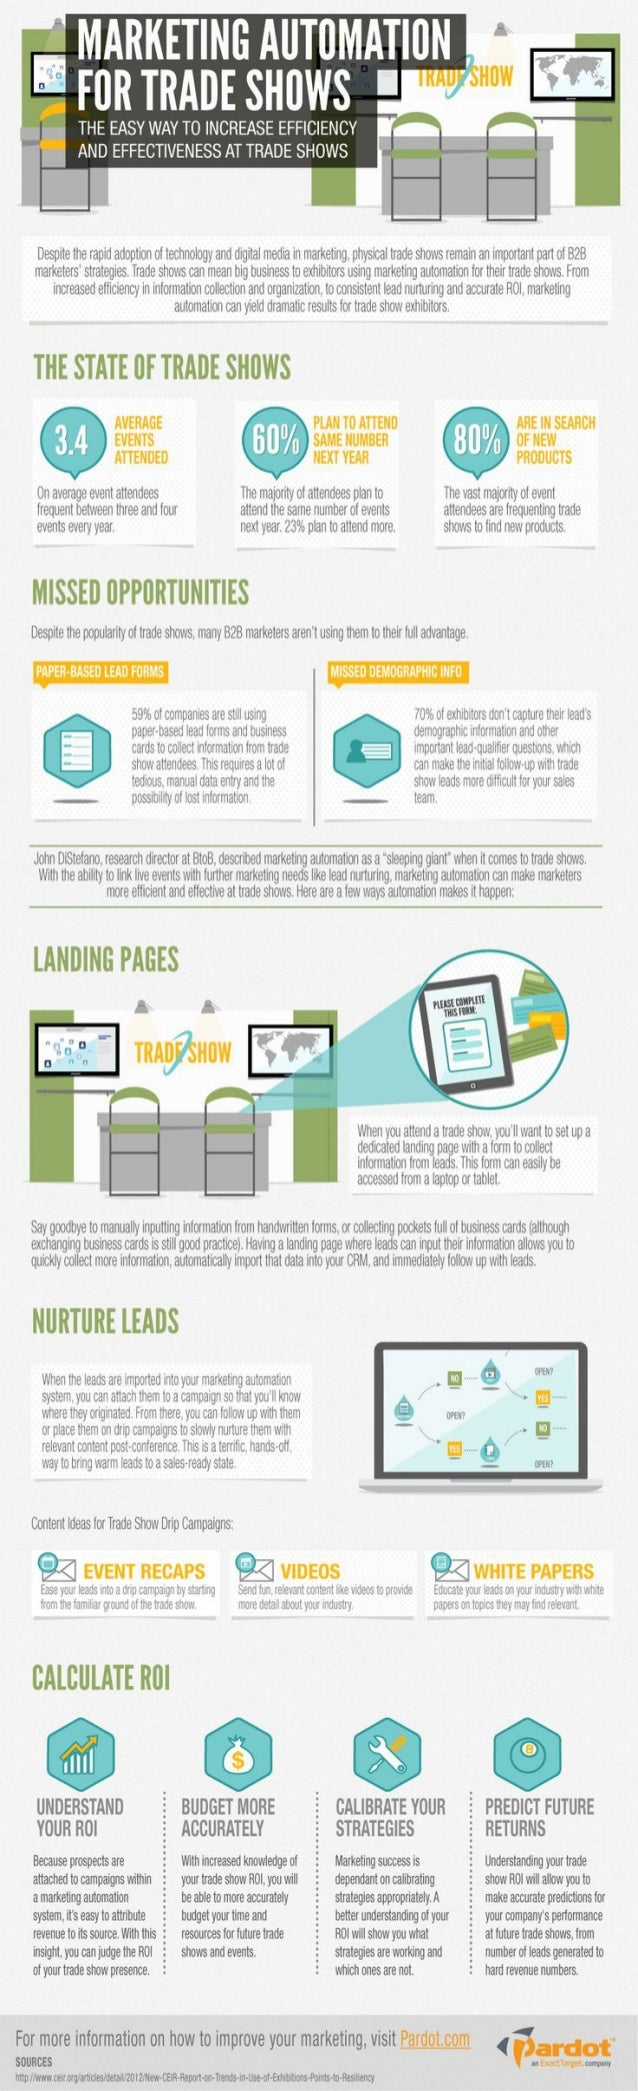 Marketing Automation for Trade Shows [Infographic]